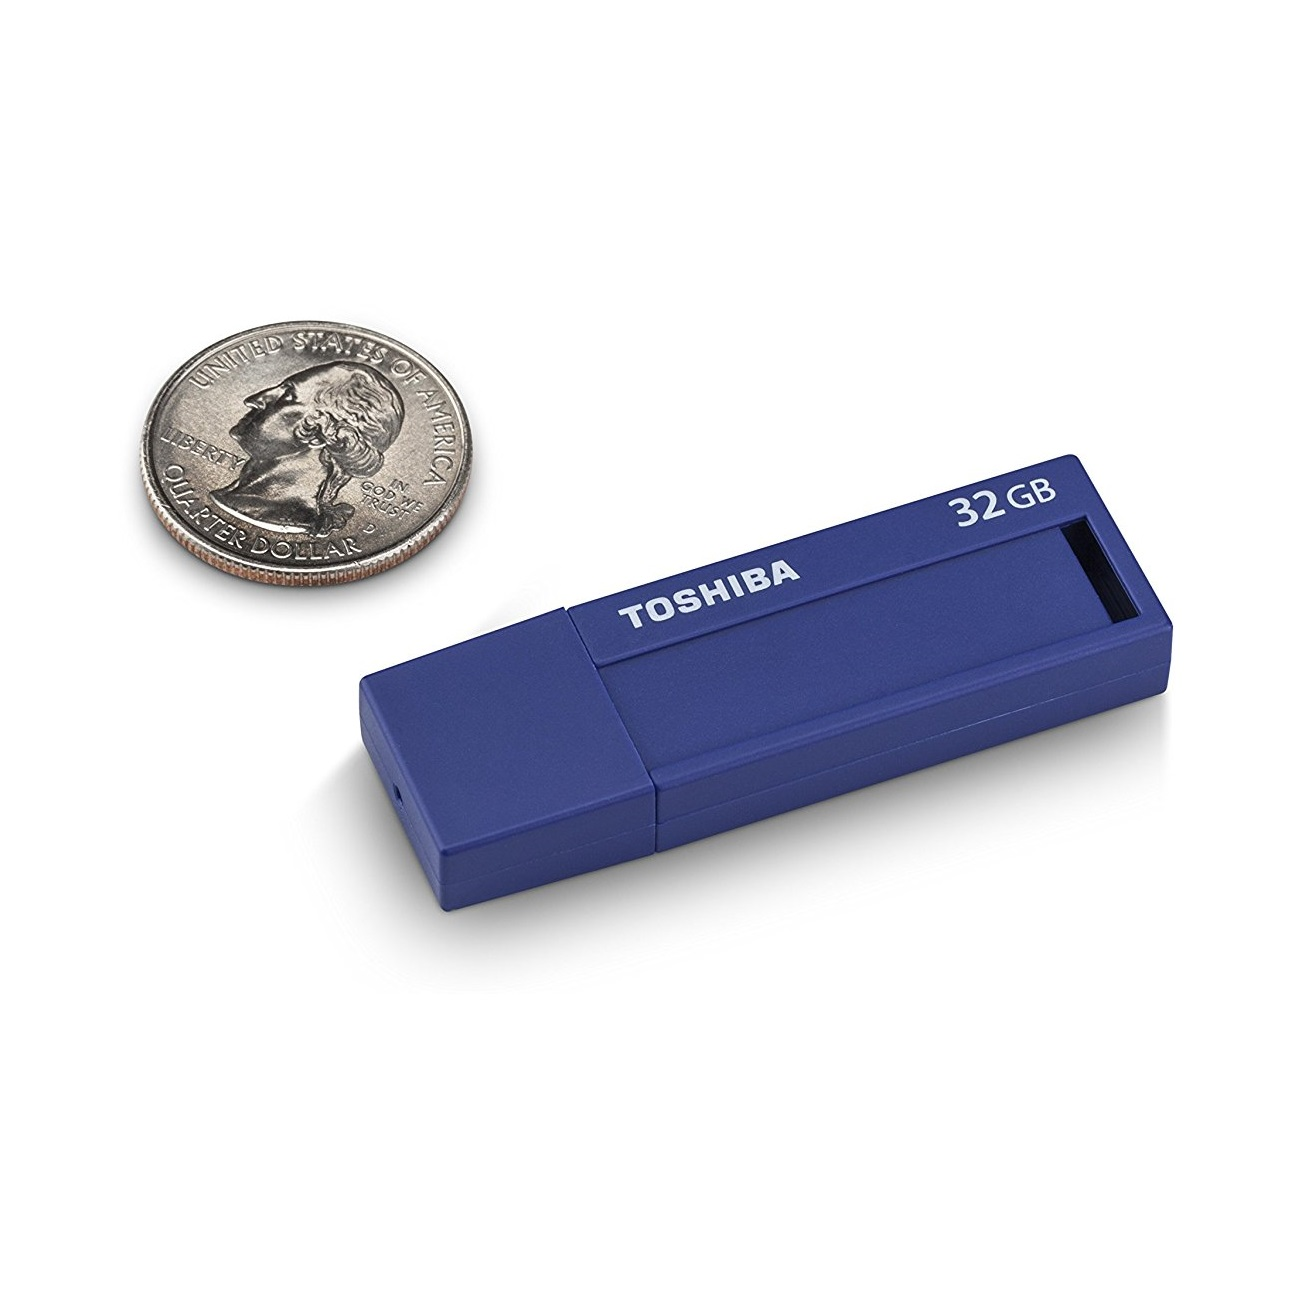 how to open usb on toshiba